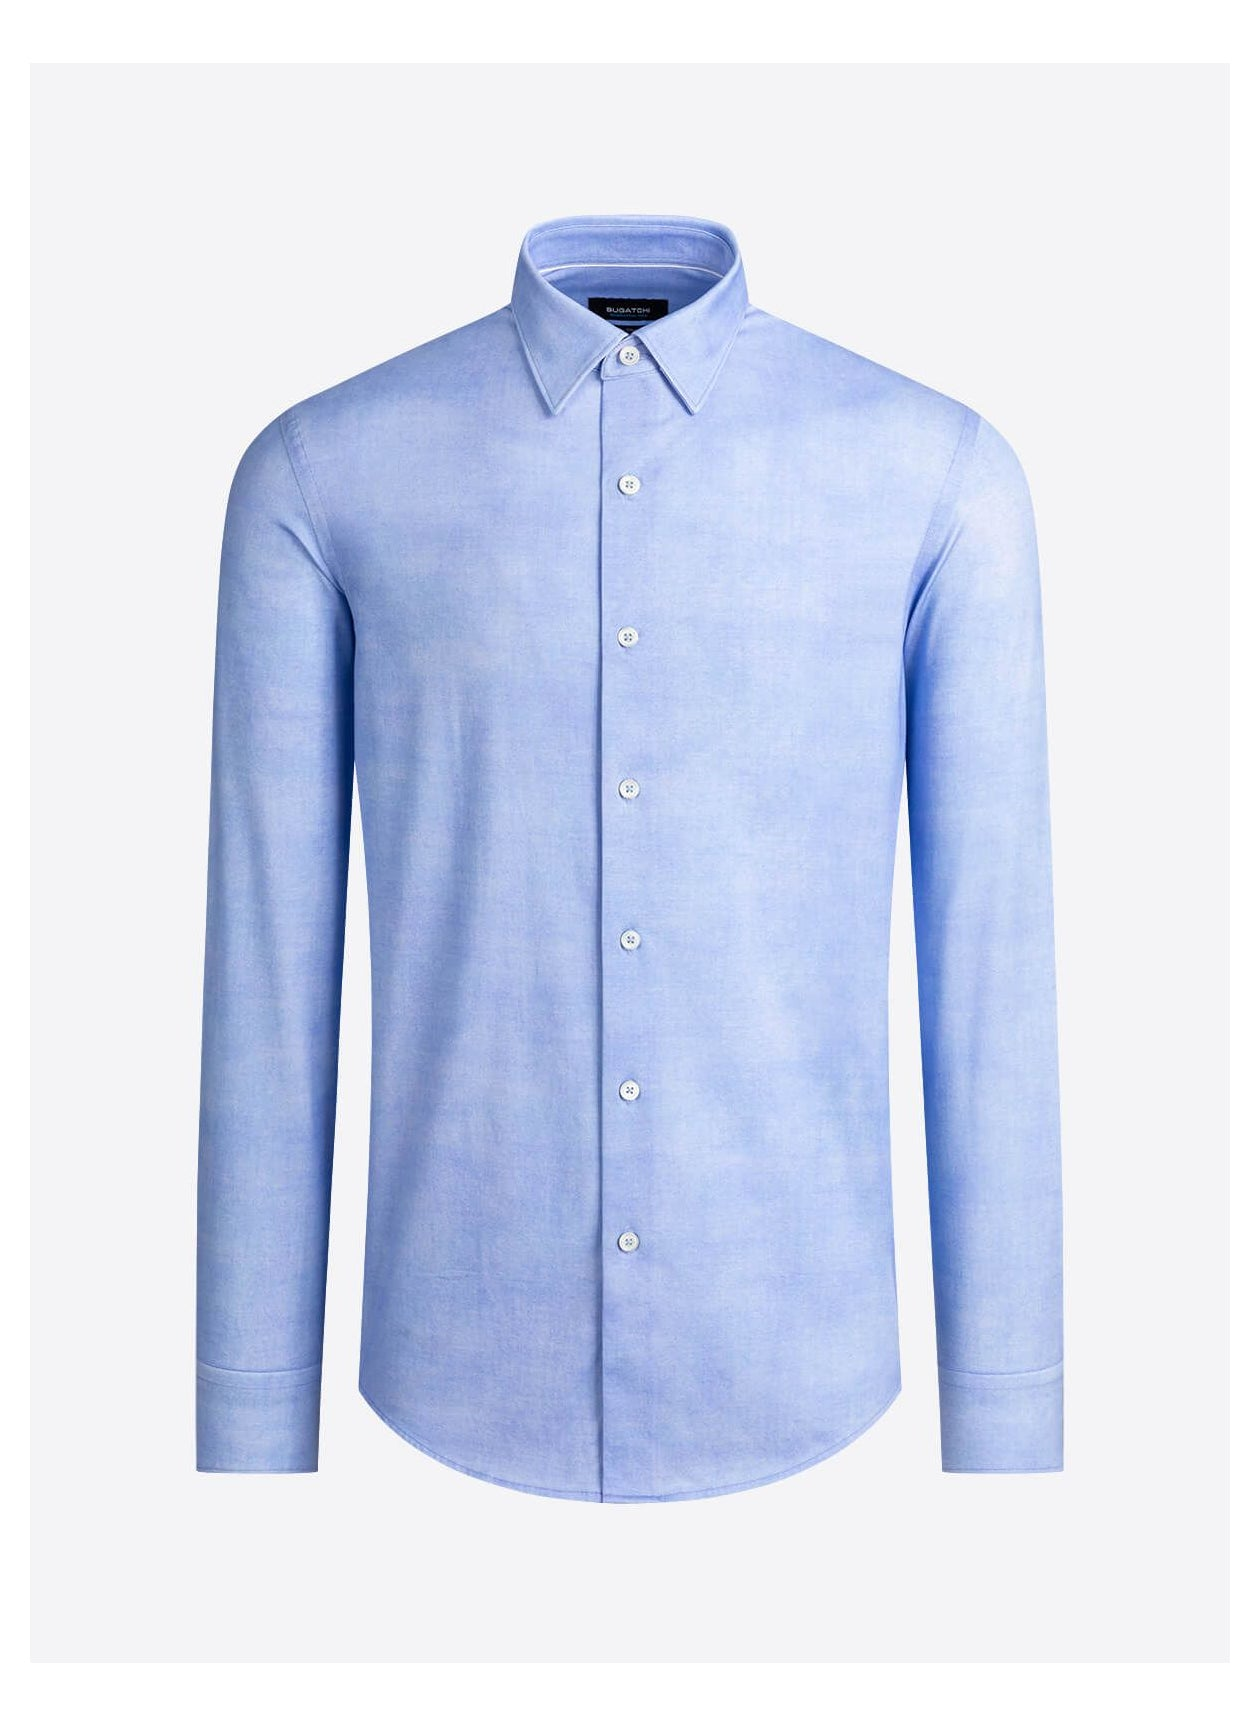 OOOHCOTTON 8 WAY STRETCH SHIRT - SKY